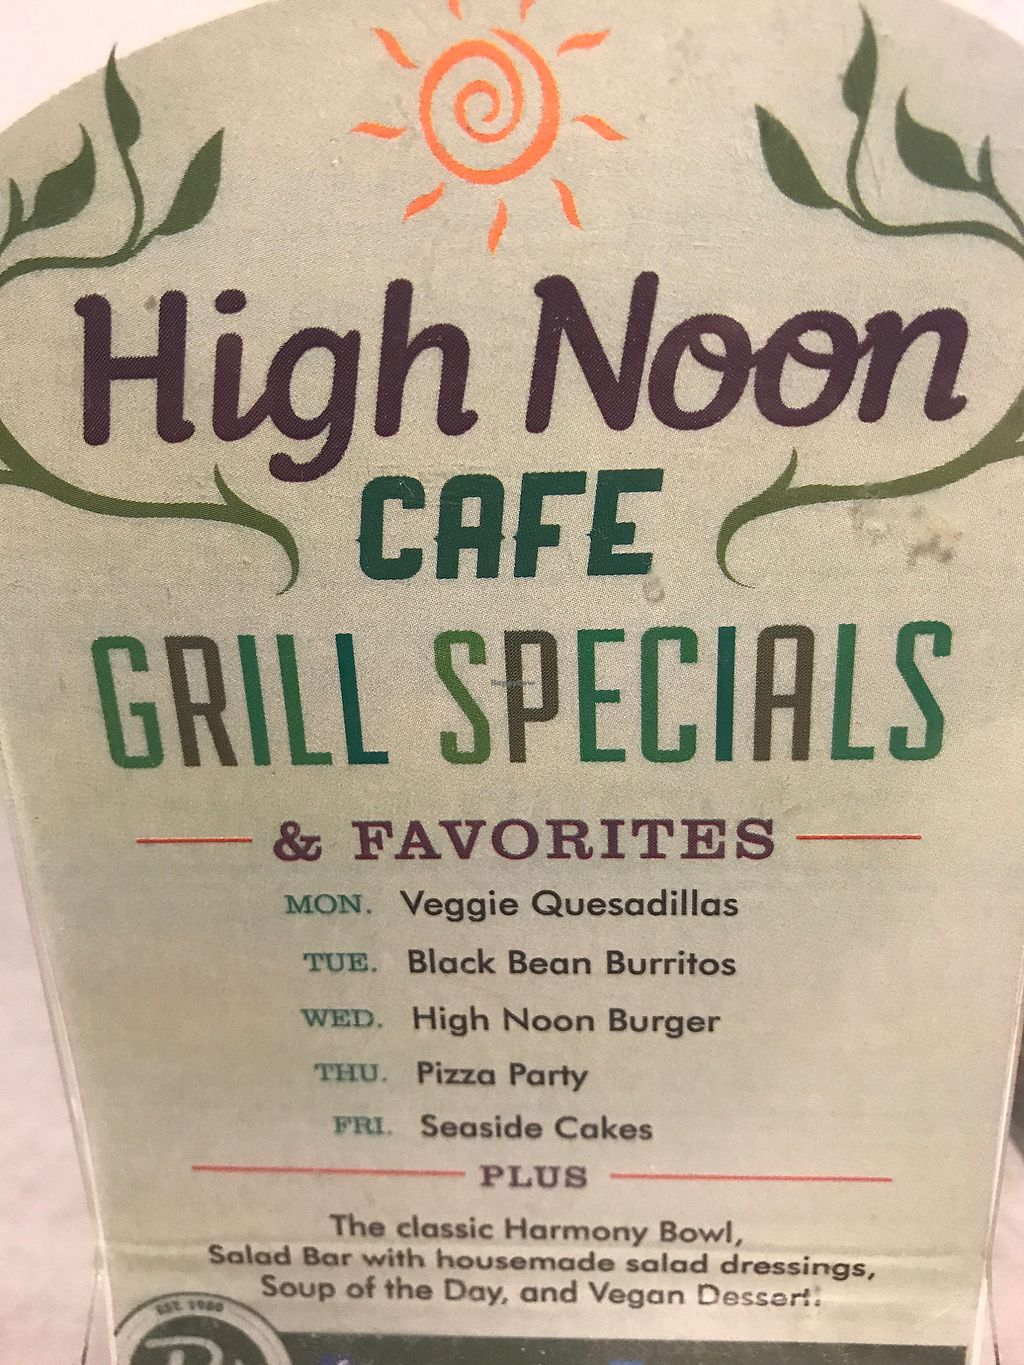 """Photo of High Noon Cafe  by <a href=""""/members/profile/cheez"""">cheez</a> <br/>Menu - July 2017 <br/> July 5, 2017  - <a href='/contact/abuse/image/2155/276898'>Report</a>"""